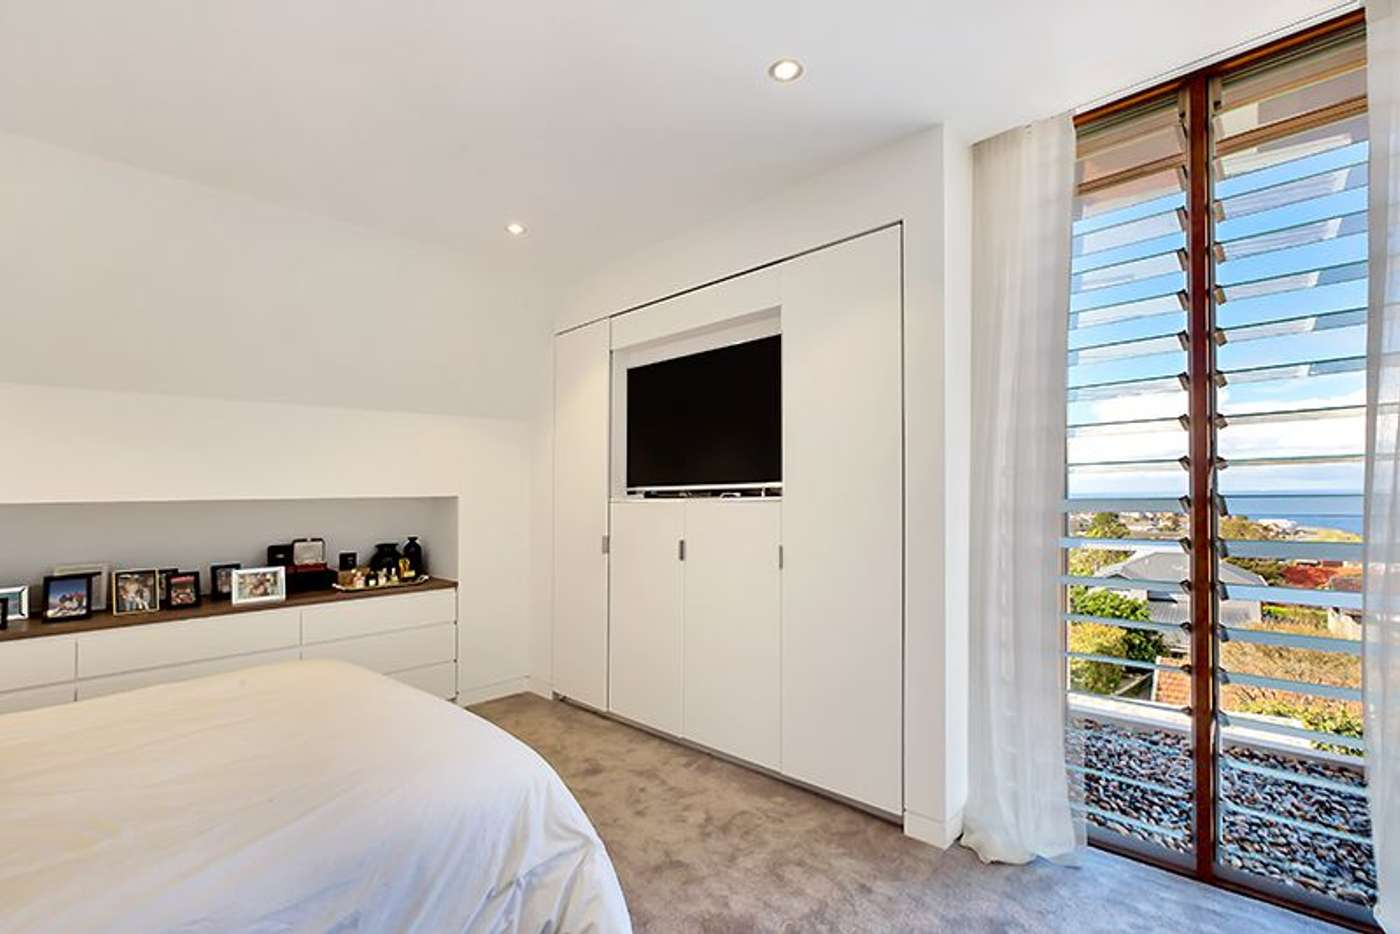 Sixth view of Homely apartment listing, 6/43A Captain Pipers Road, Vaucluse NSW 2030